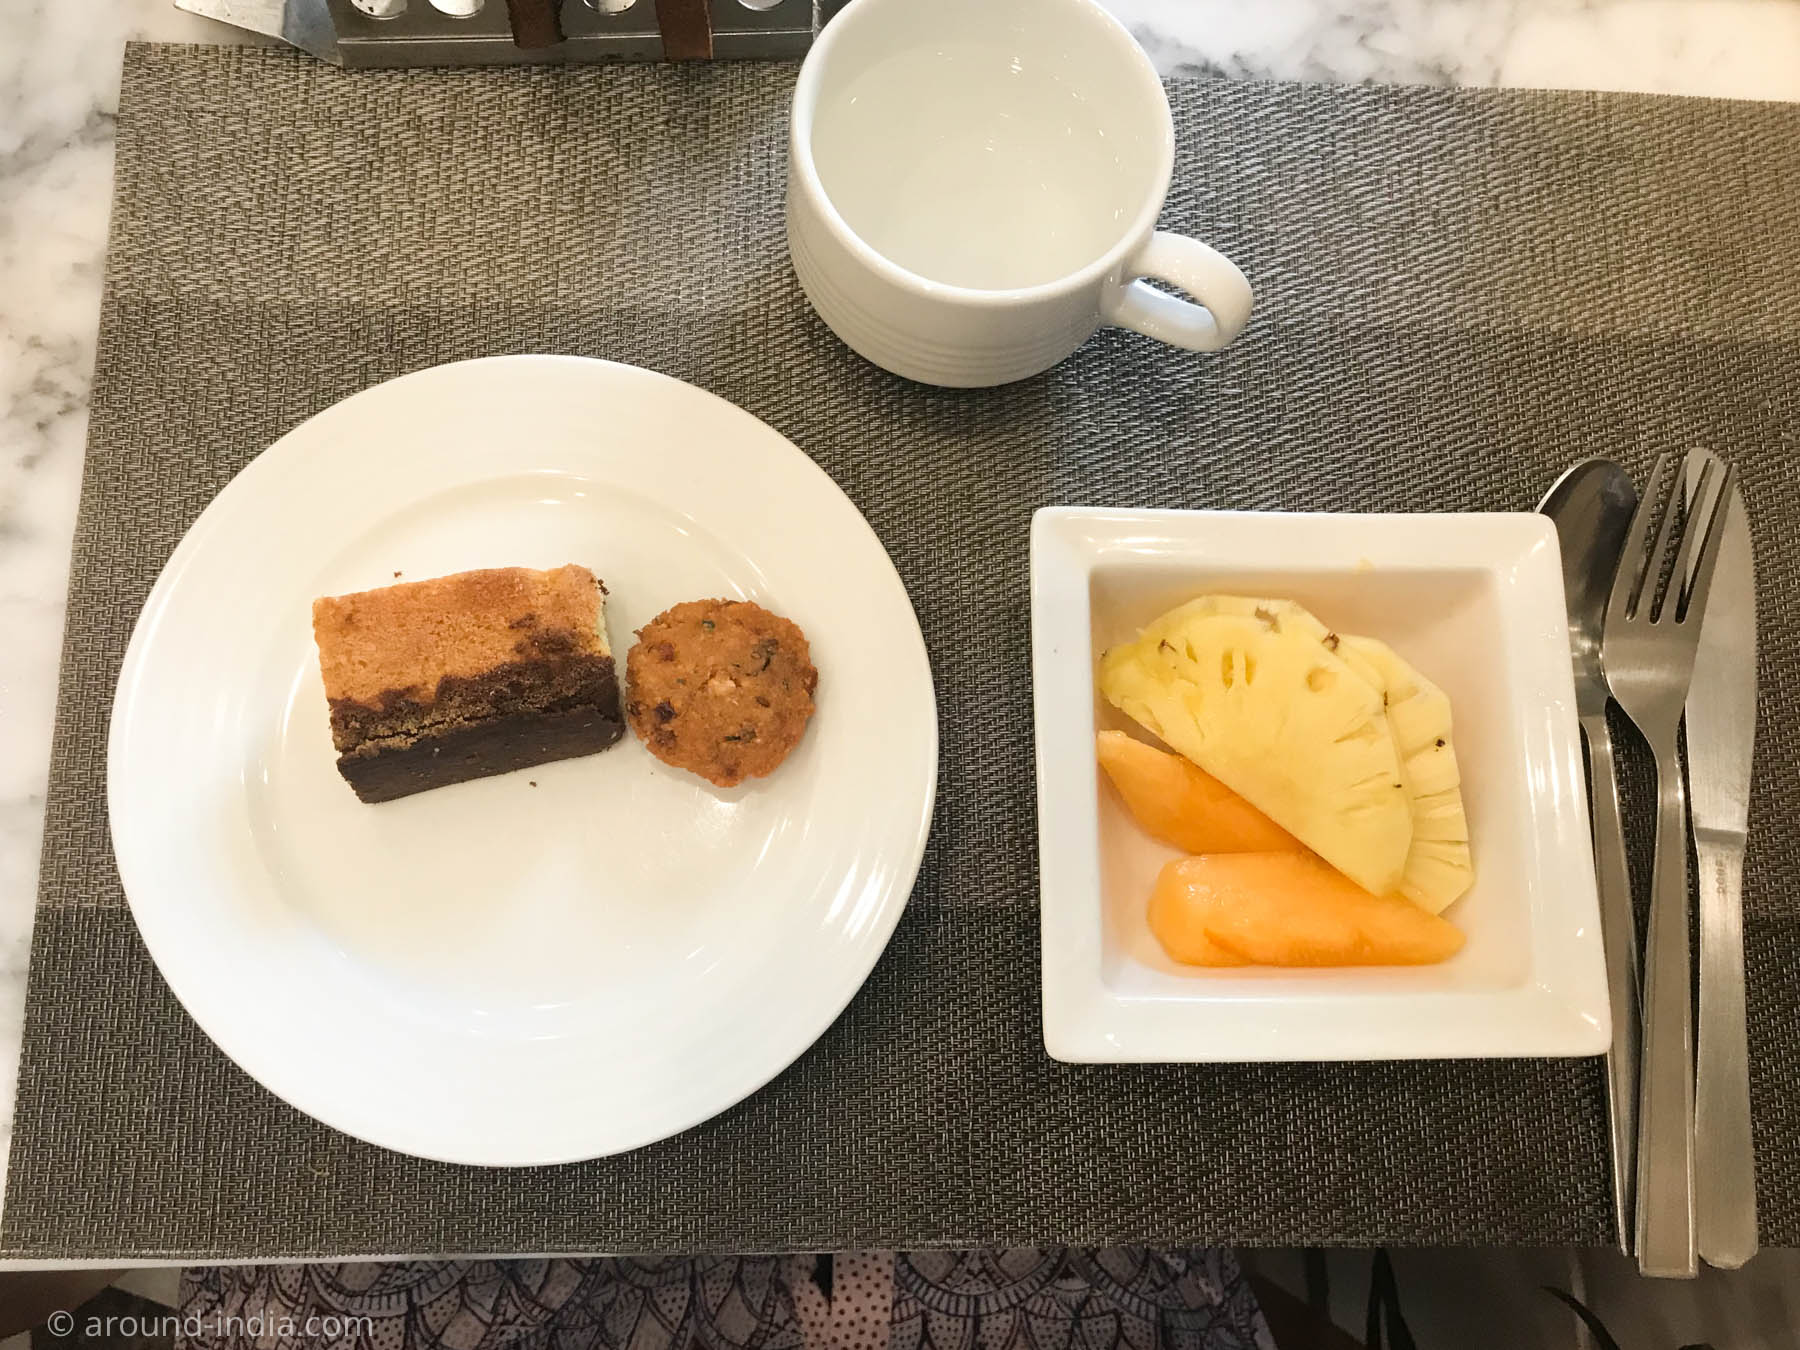 Residency Hotel Fortのフルーツとワダとケーキ